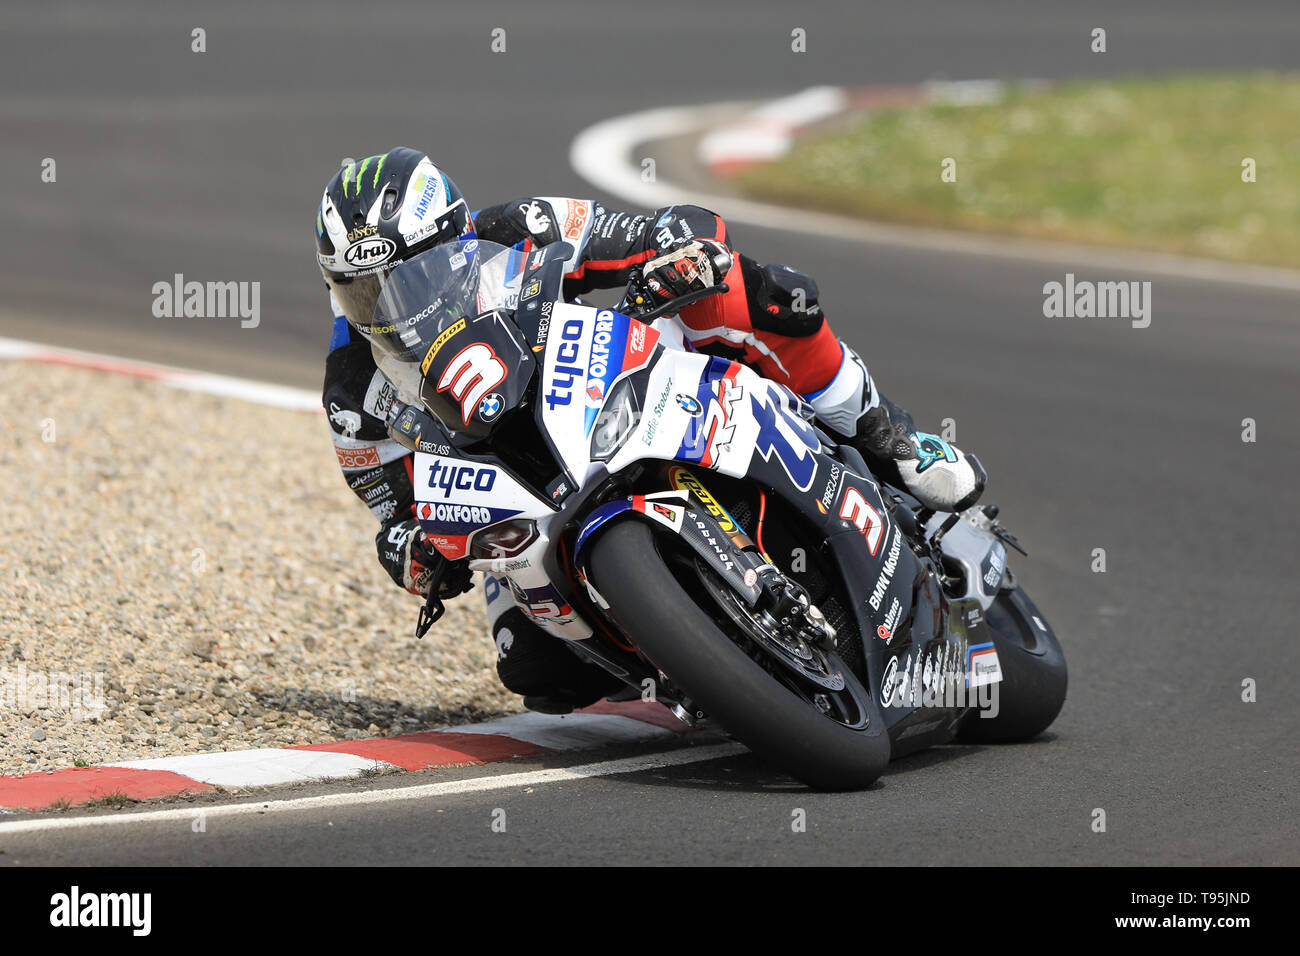 Portrush, Northern Ireland. 16th May, 2019. International North West 200 Motorcycle road racing, Thursday practice and evening racing; Michael Dunlop on the TYCO BMW during the SuperBike qualifying session Credit: Action Plus Sports/Alamy Live News - Stock Image